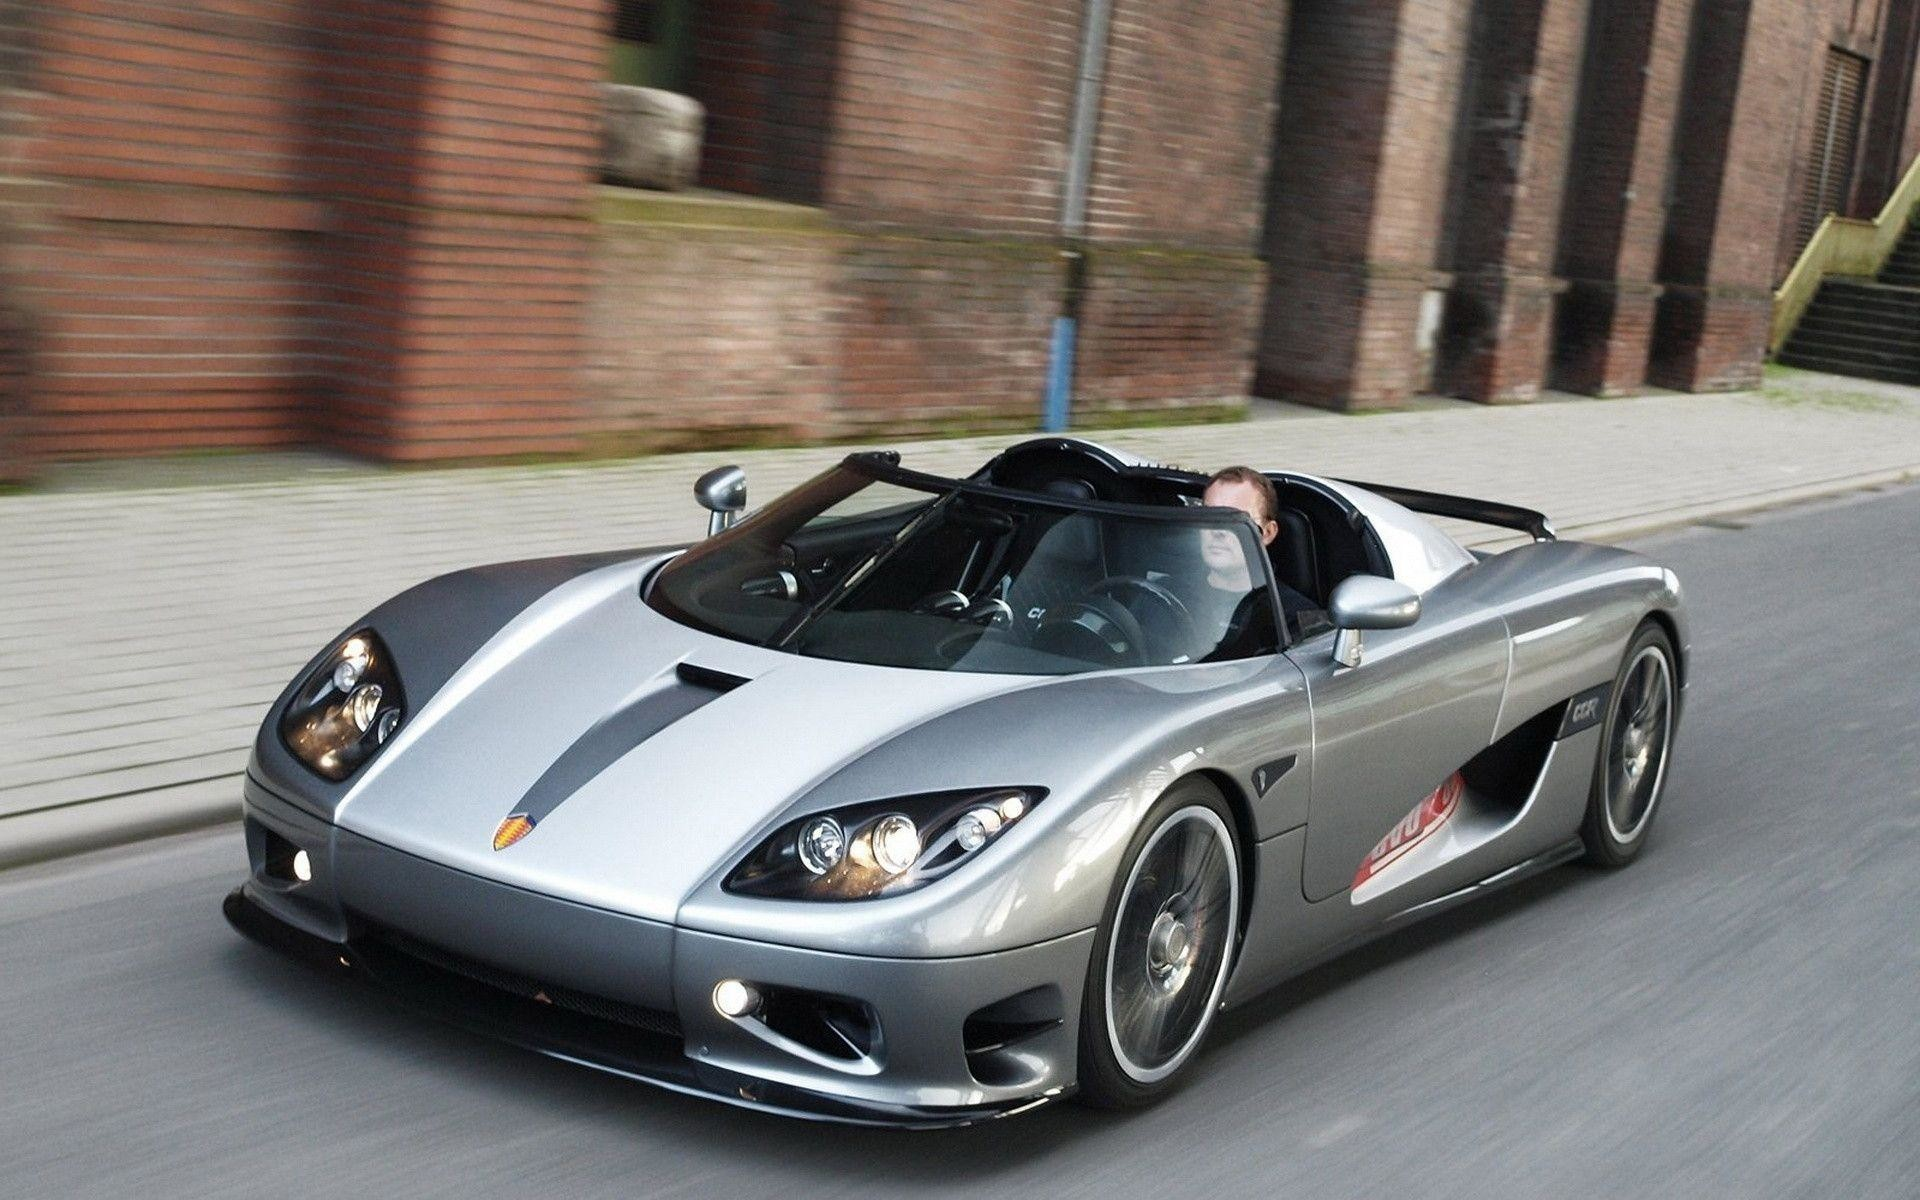 1920x1200 16 Koenigsegg Ccx Wallpapers | Koenigsegg Ccx Backgrounds